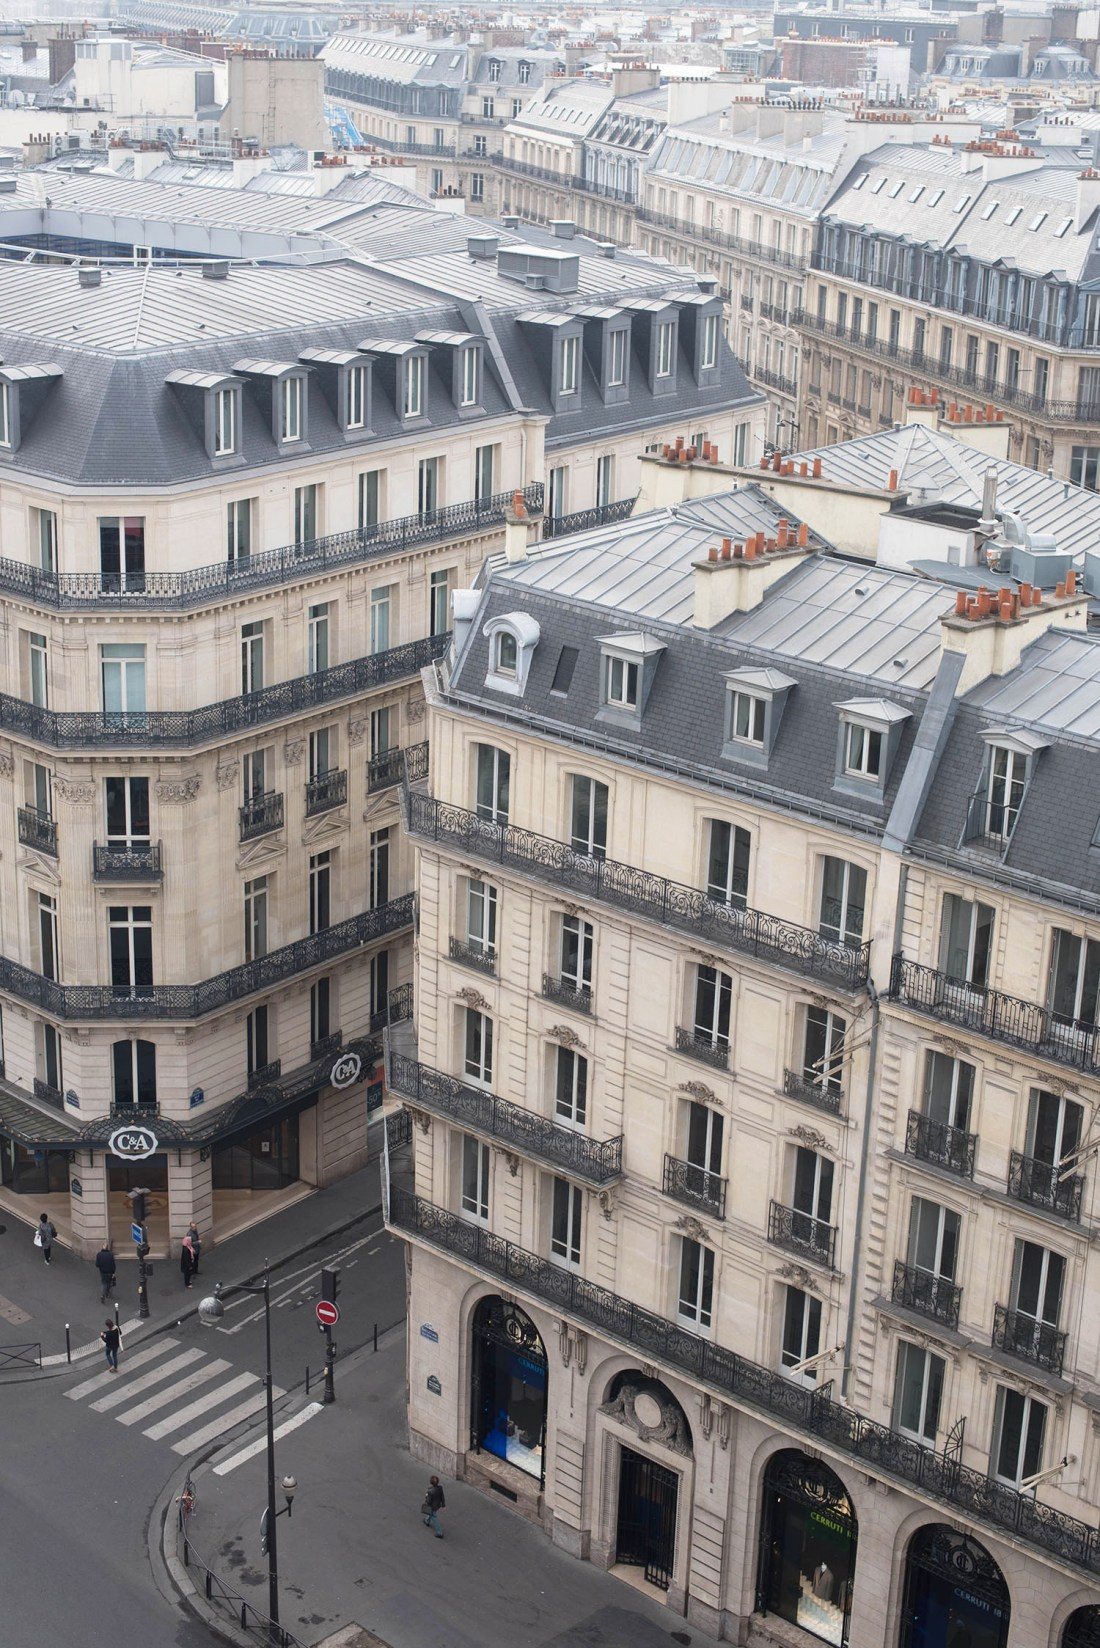 The rooftops of Paris near the Opera Garnier seen from above, as captured by travel blogger Cee Fardoe of Coco & Vera